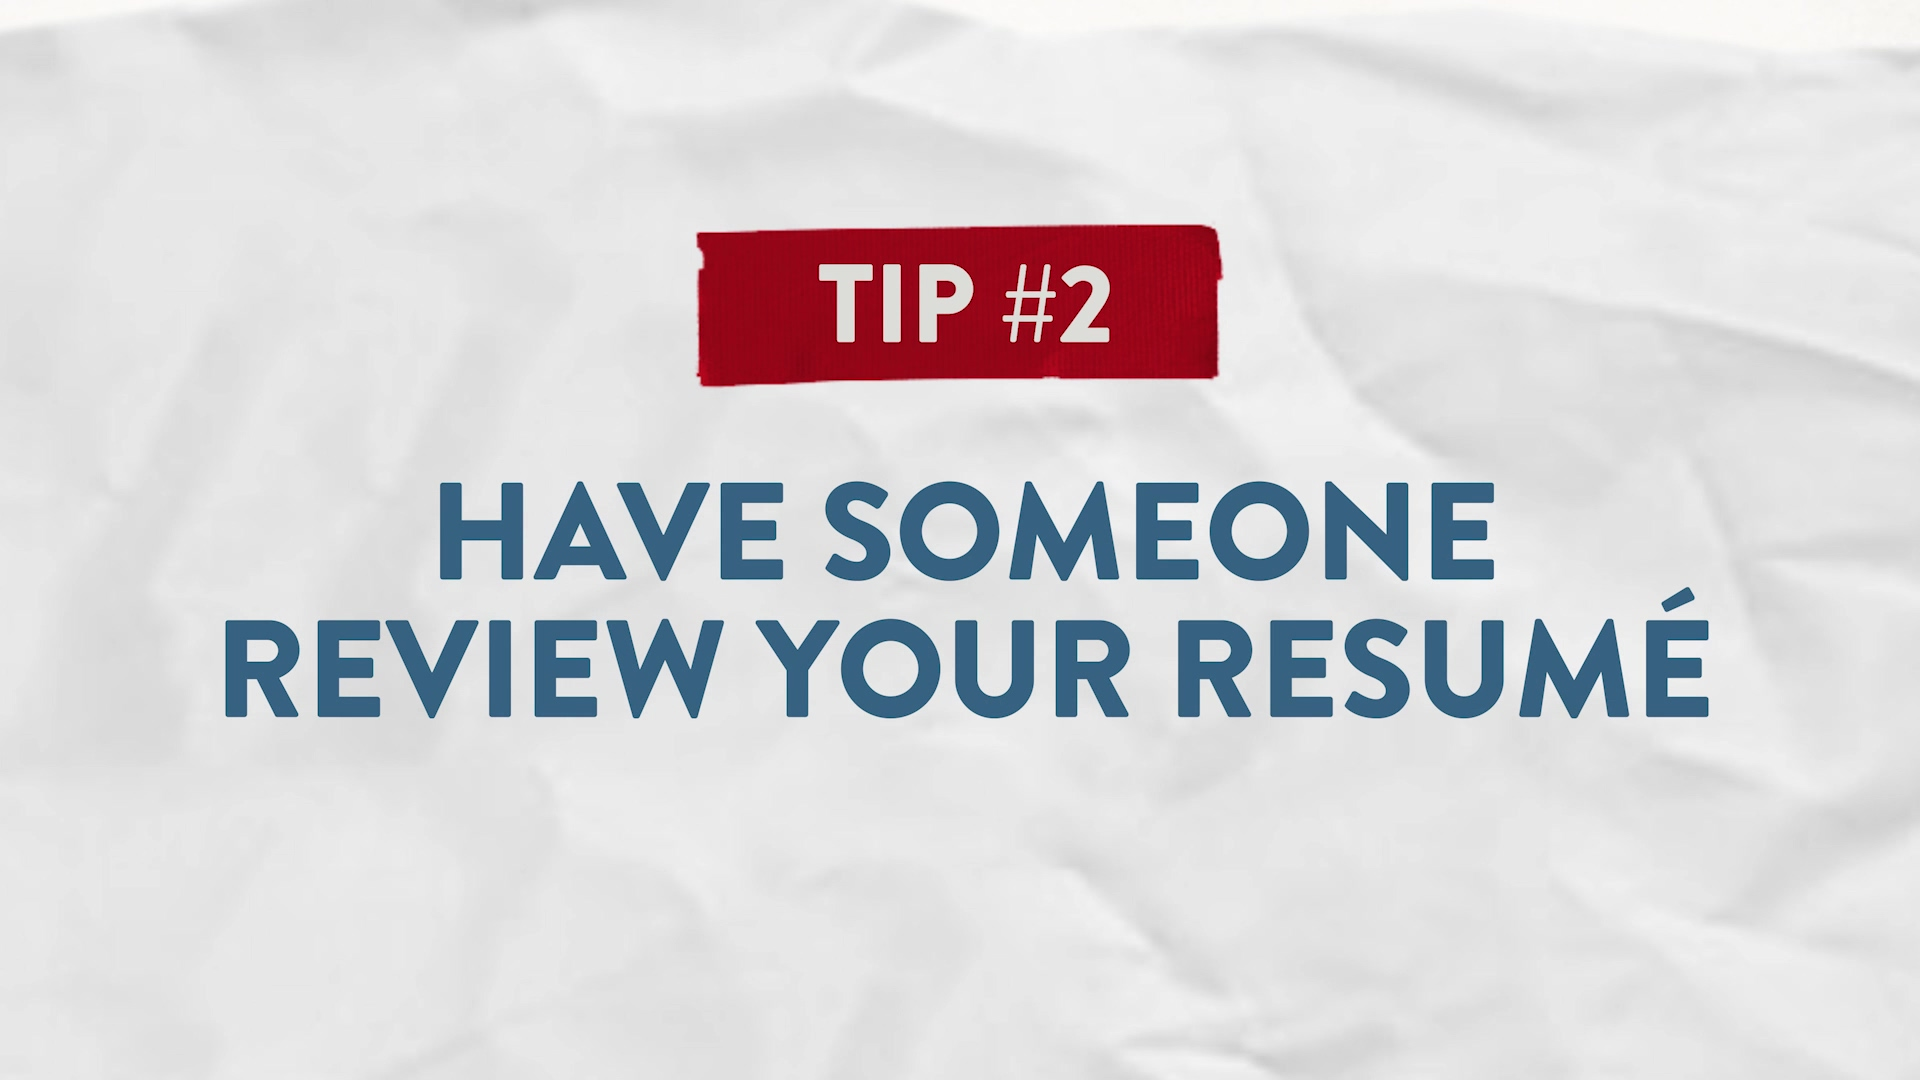 Tip #2 Have Someone Review Your Resume